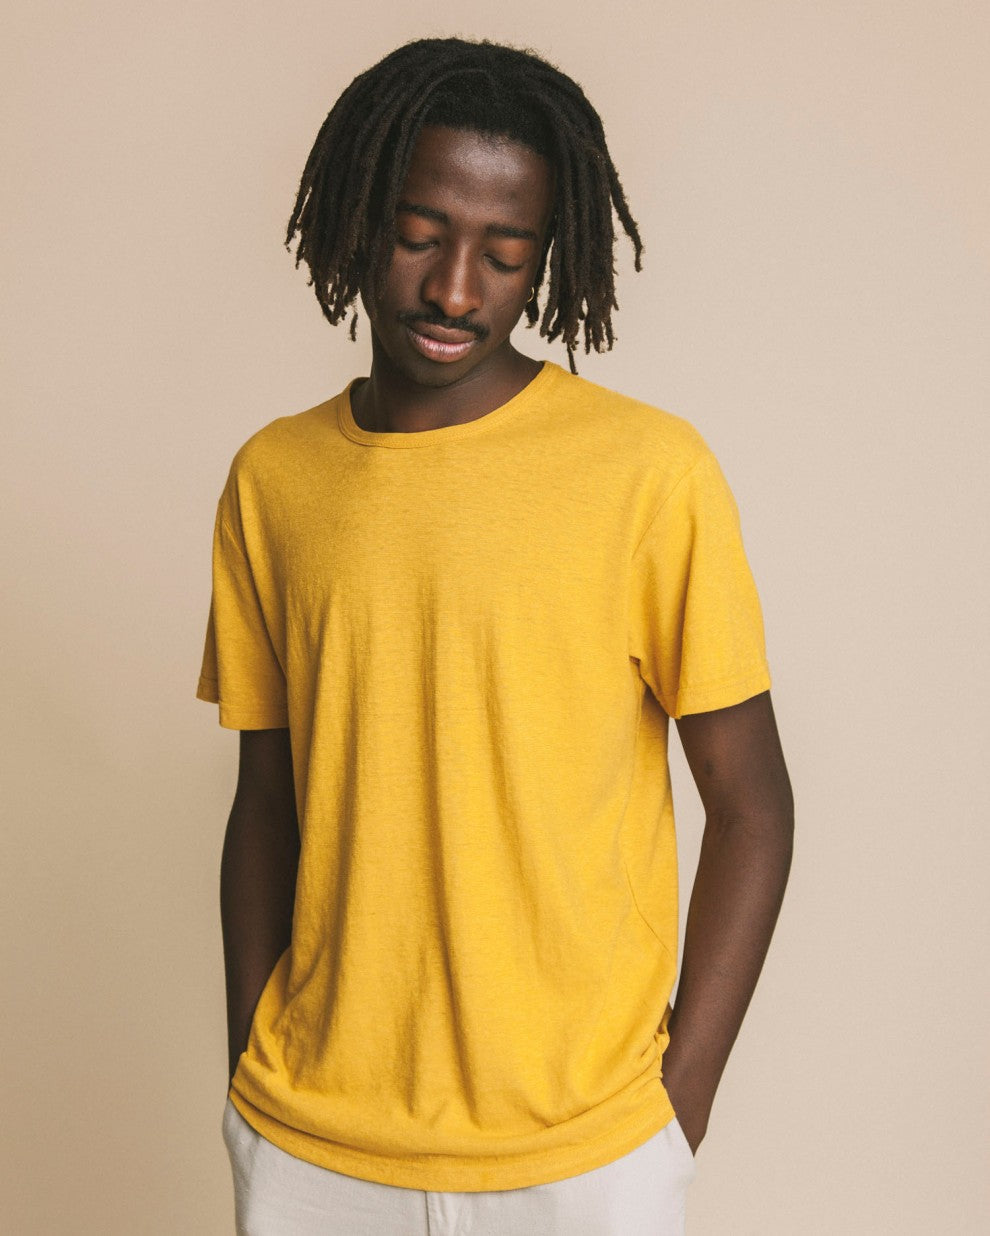 Tee-Shirt Homme - Jaune Moutarde